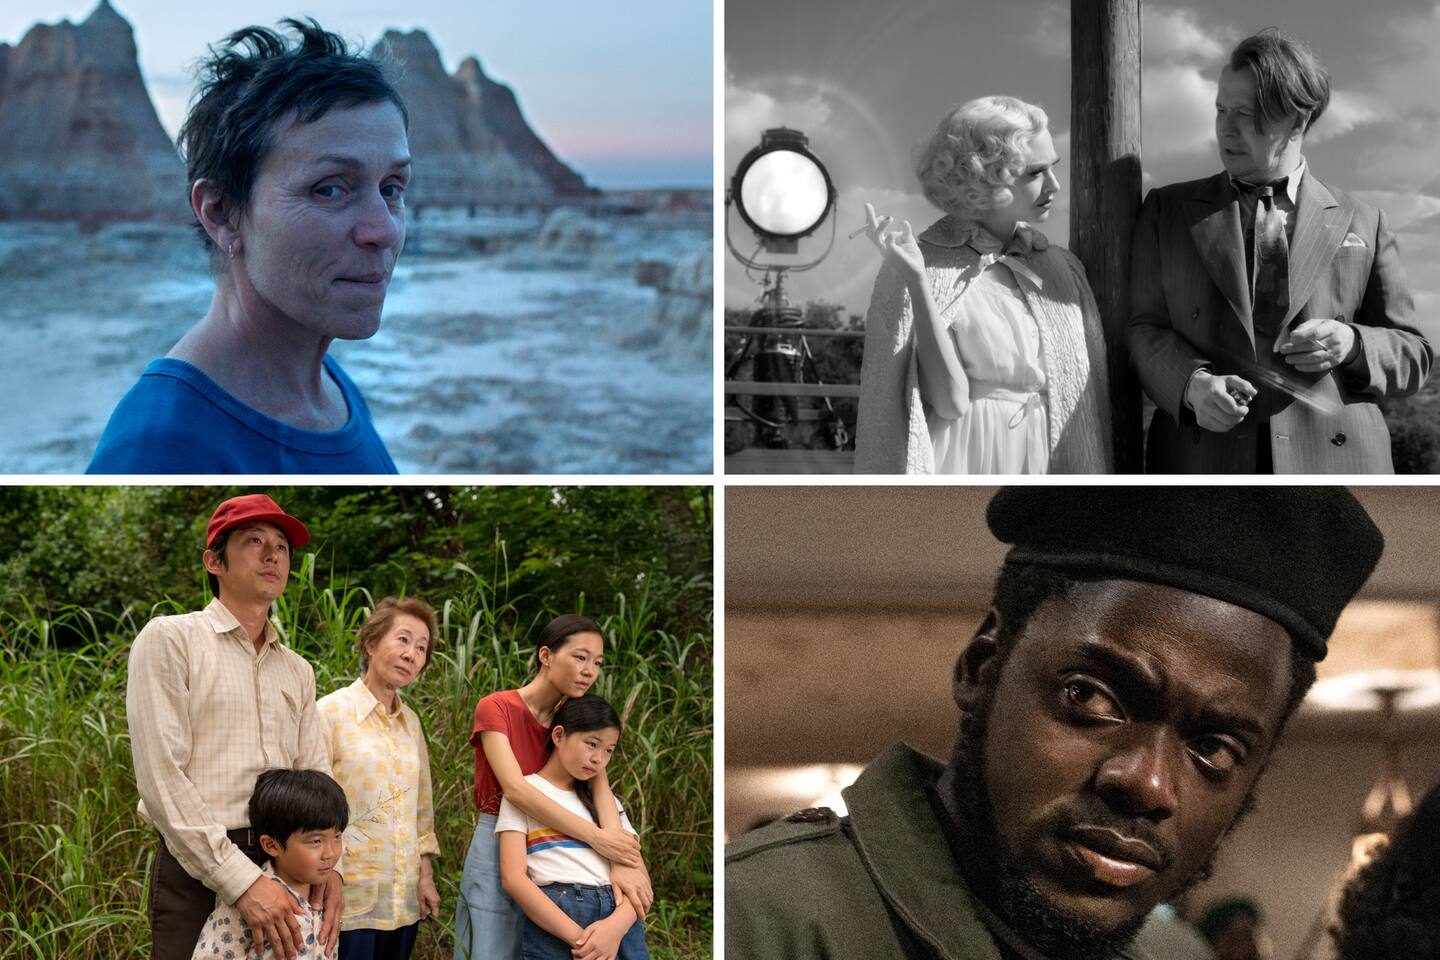 Oscar nominations 2021: Complete list of nominees and instant analysis